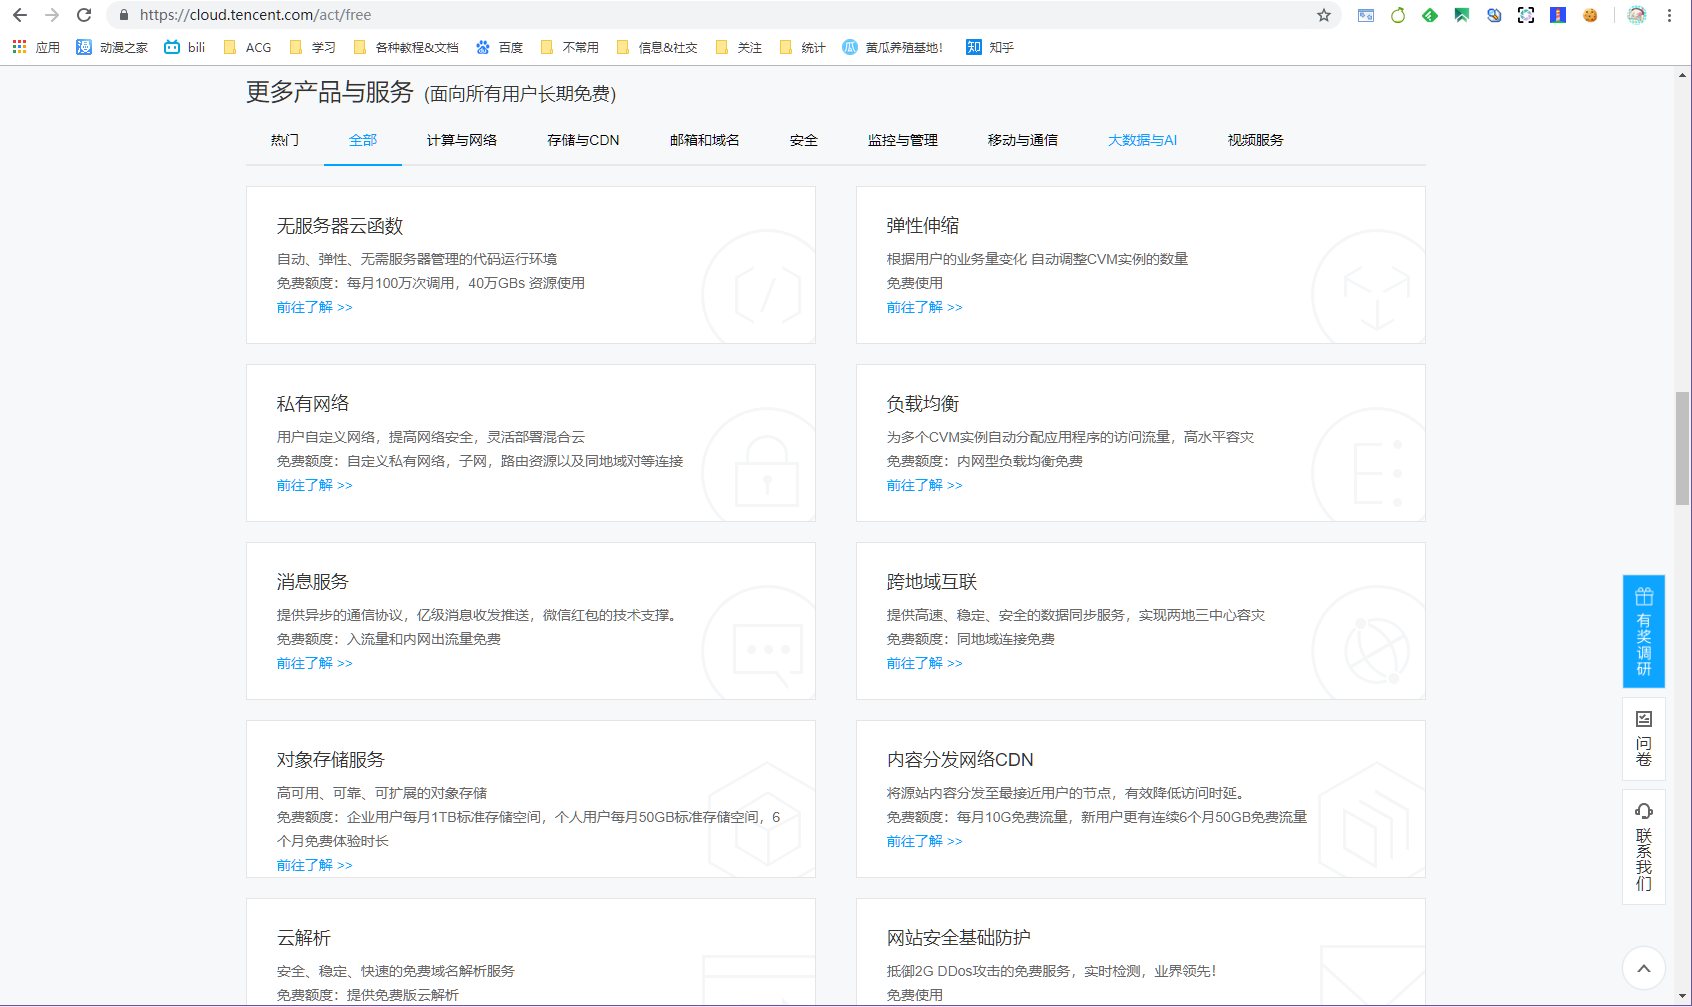 20190503003933.png